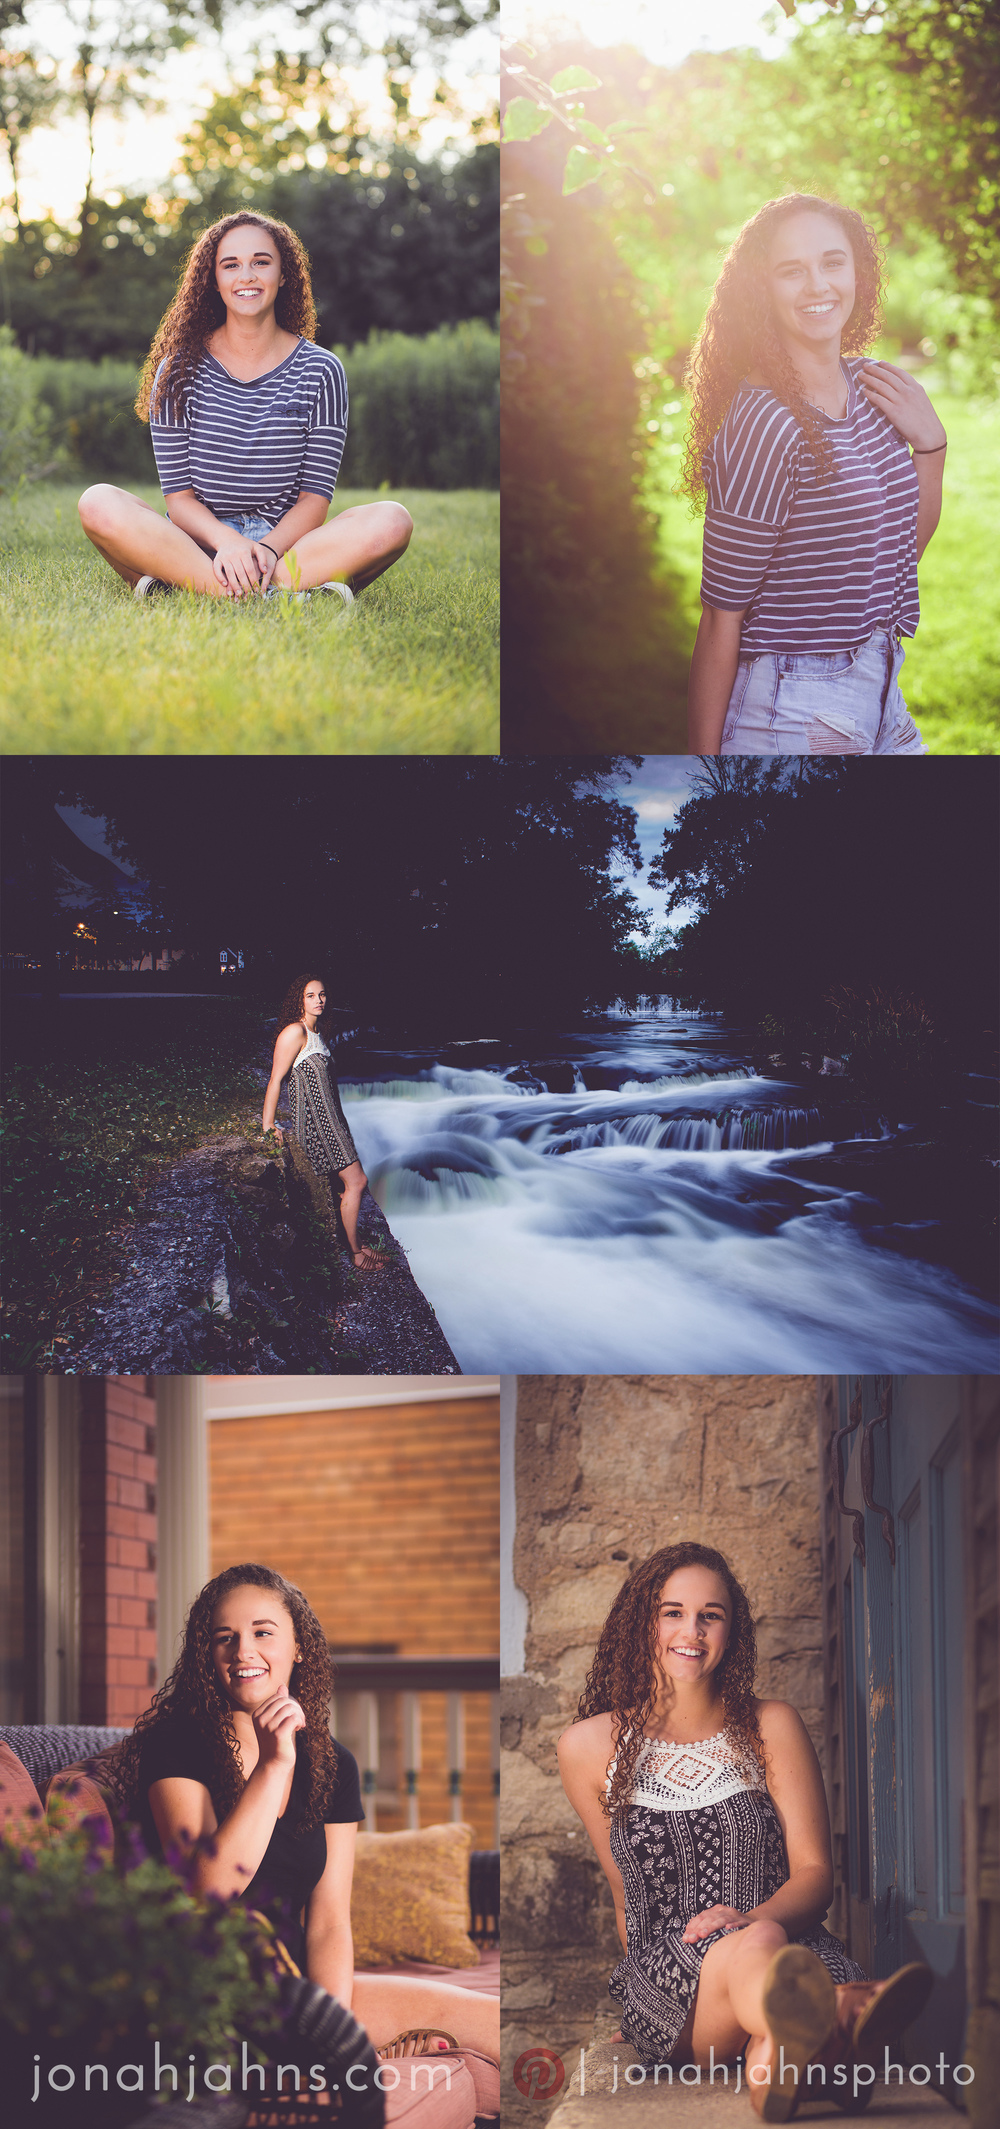 Kylie_SeniorPictures_BlogPost_GermantownWisconsin.jpg